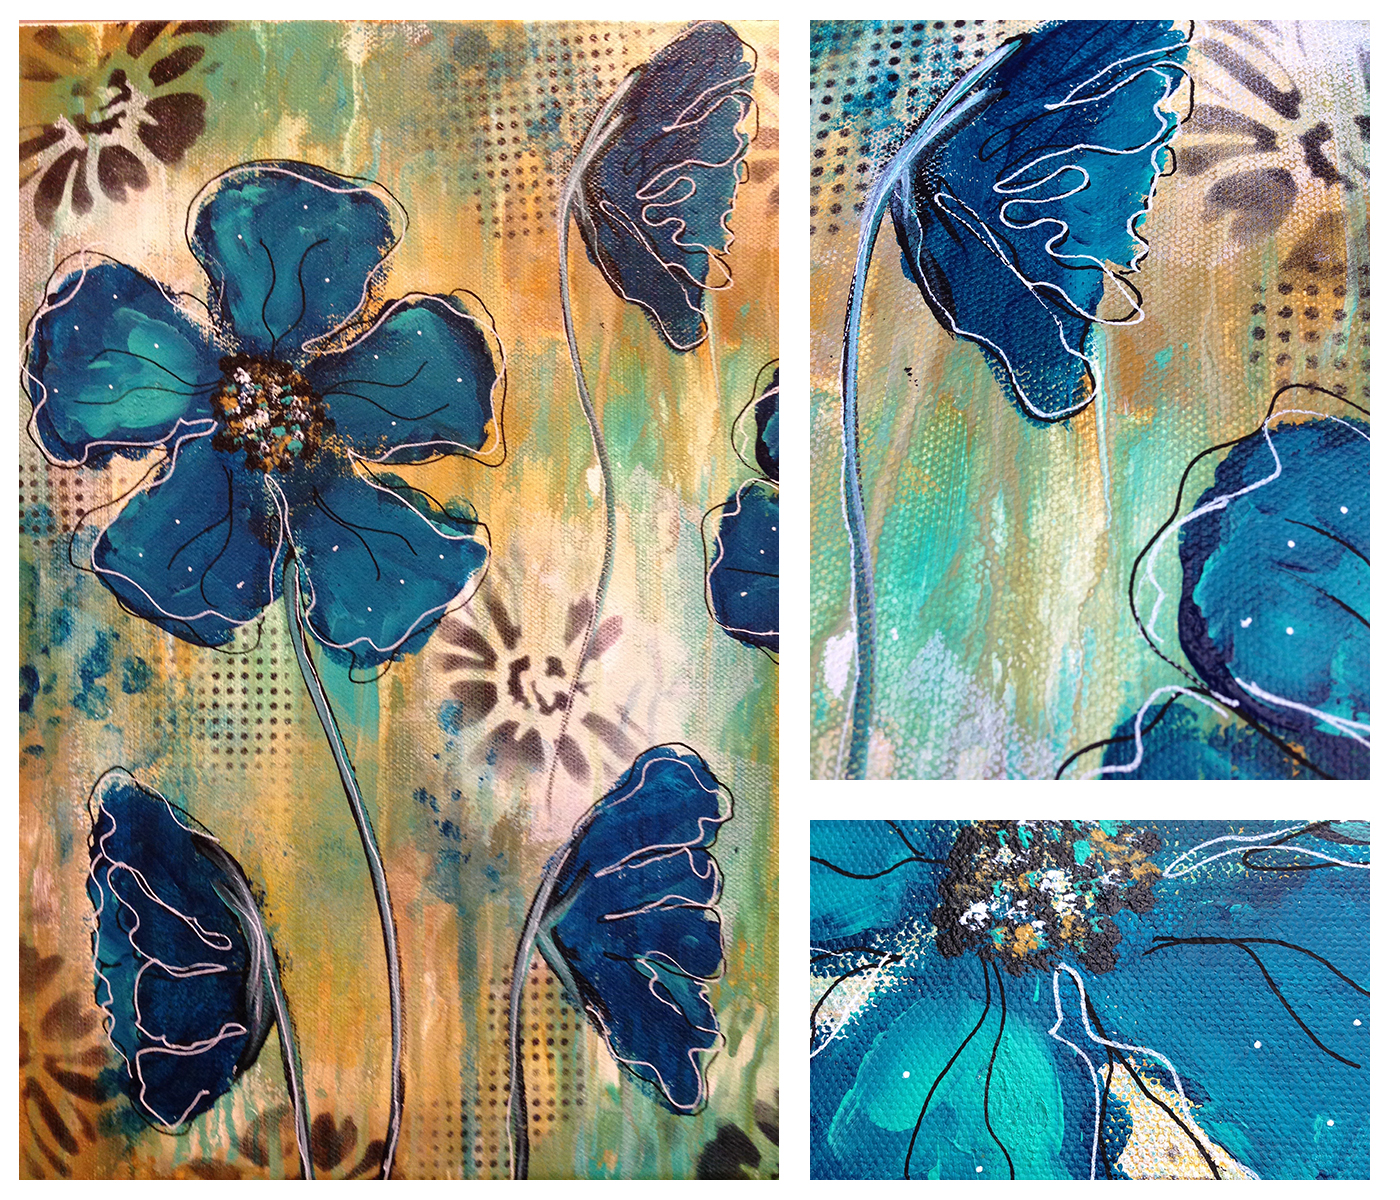 Flowers flowers everywhere kara bullock art blueflowers1 izmirmasajfo